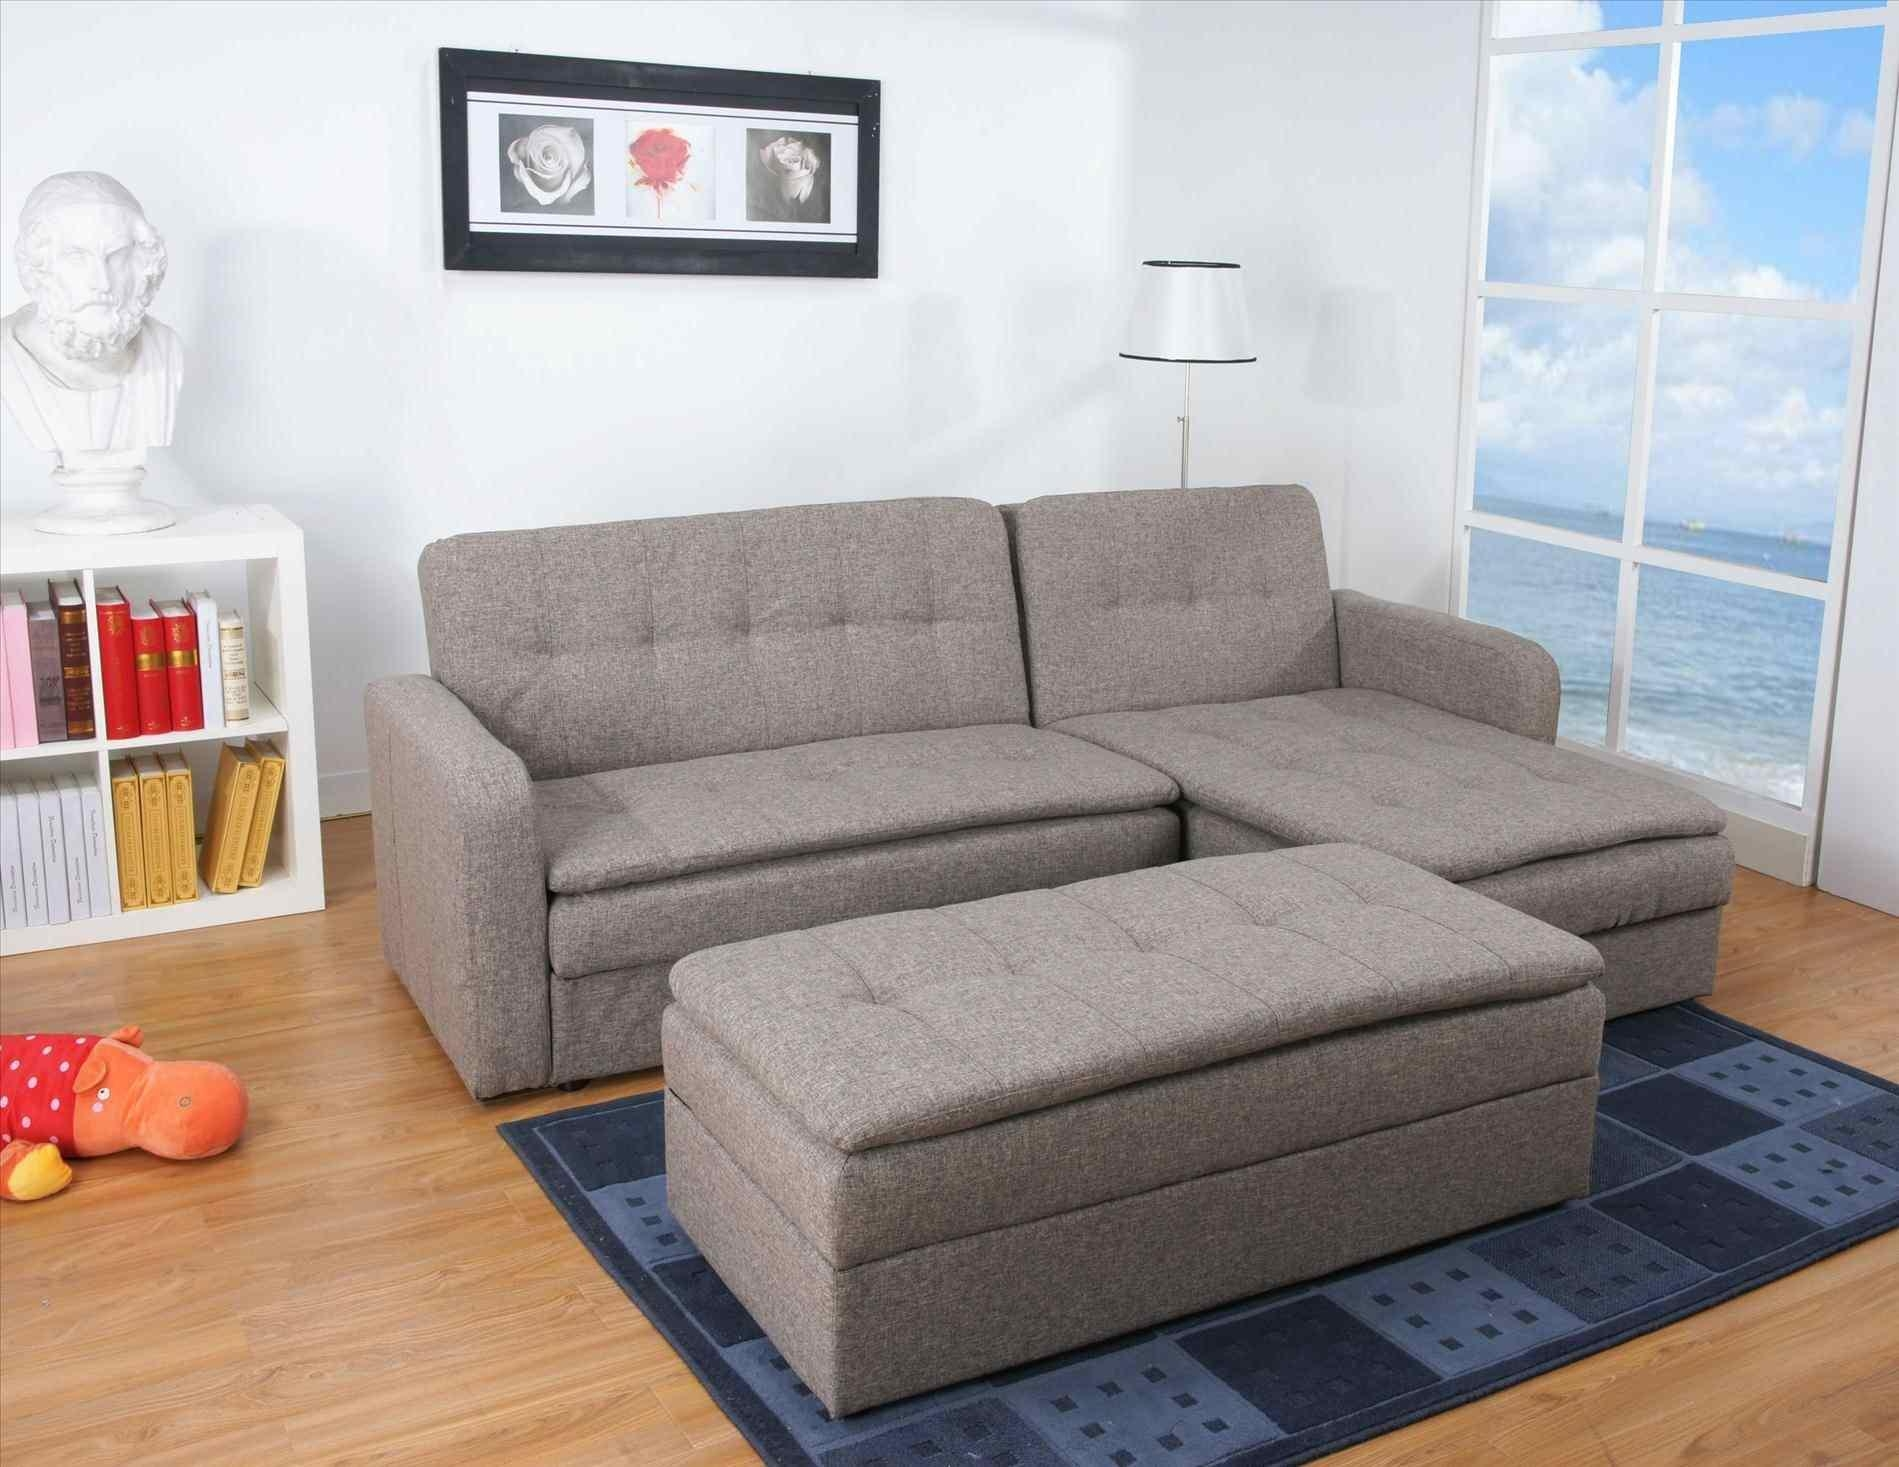 Sectional Sofas Denver | Chikara Do Reiki Pertaining To Denver Sectional (Image 12 of 15)